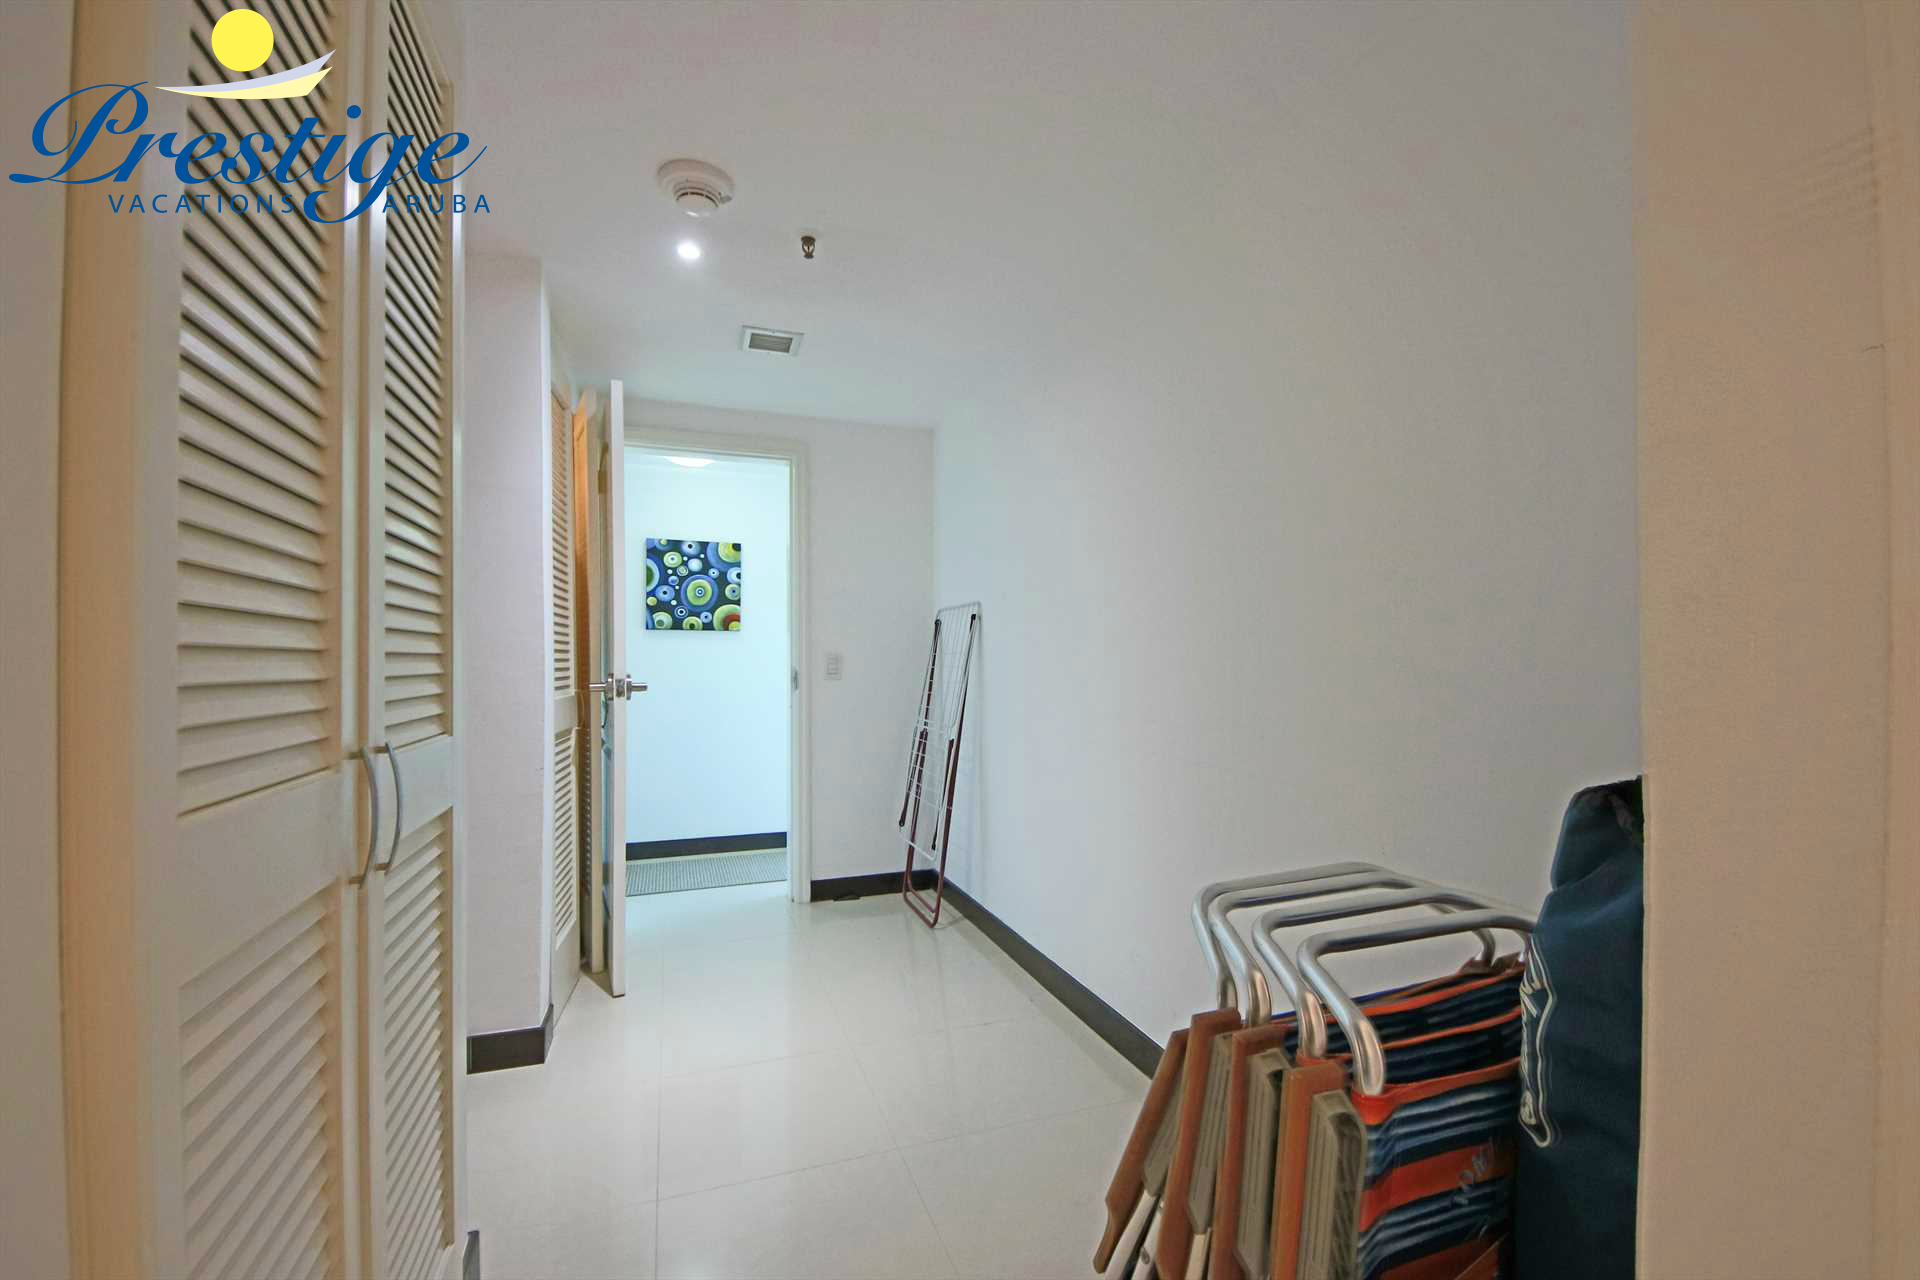 The corridor that lends access to the beach chairs, bedrooms, third bathroom plus the laundry facilities